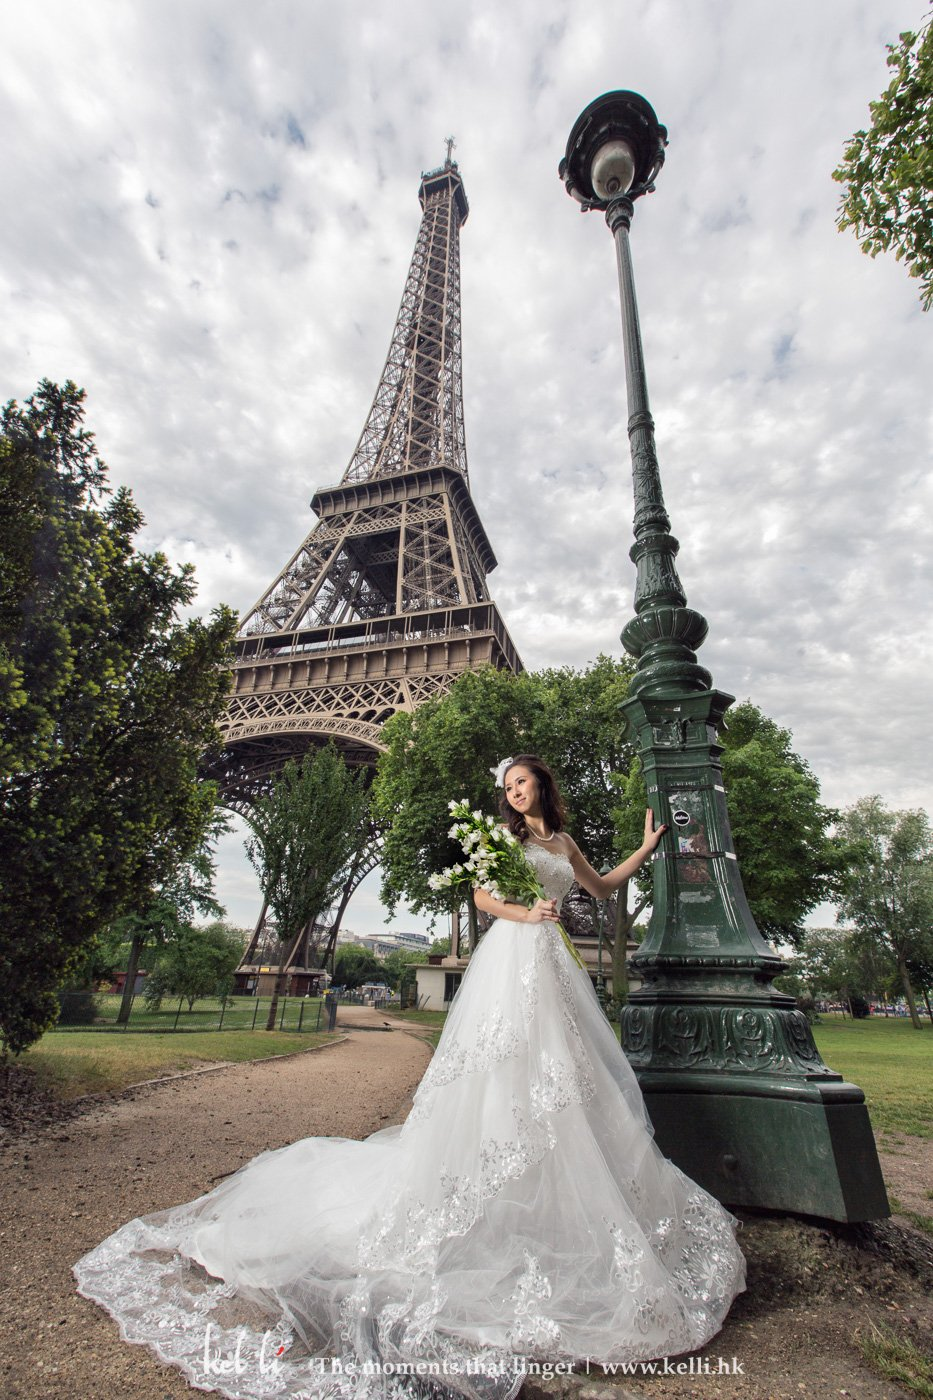 Prewedding photo under Effiel Tower